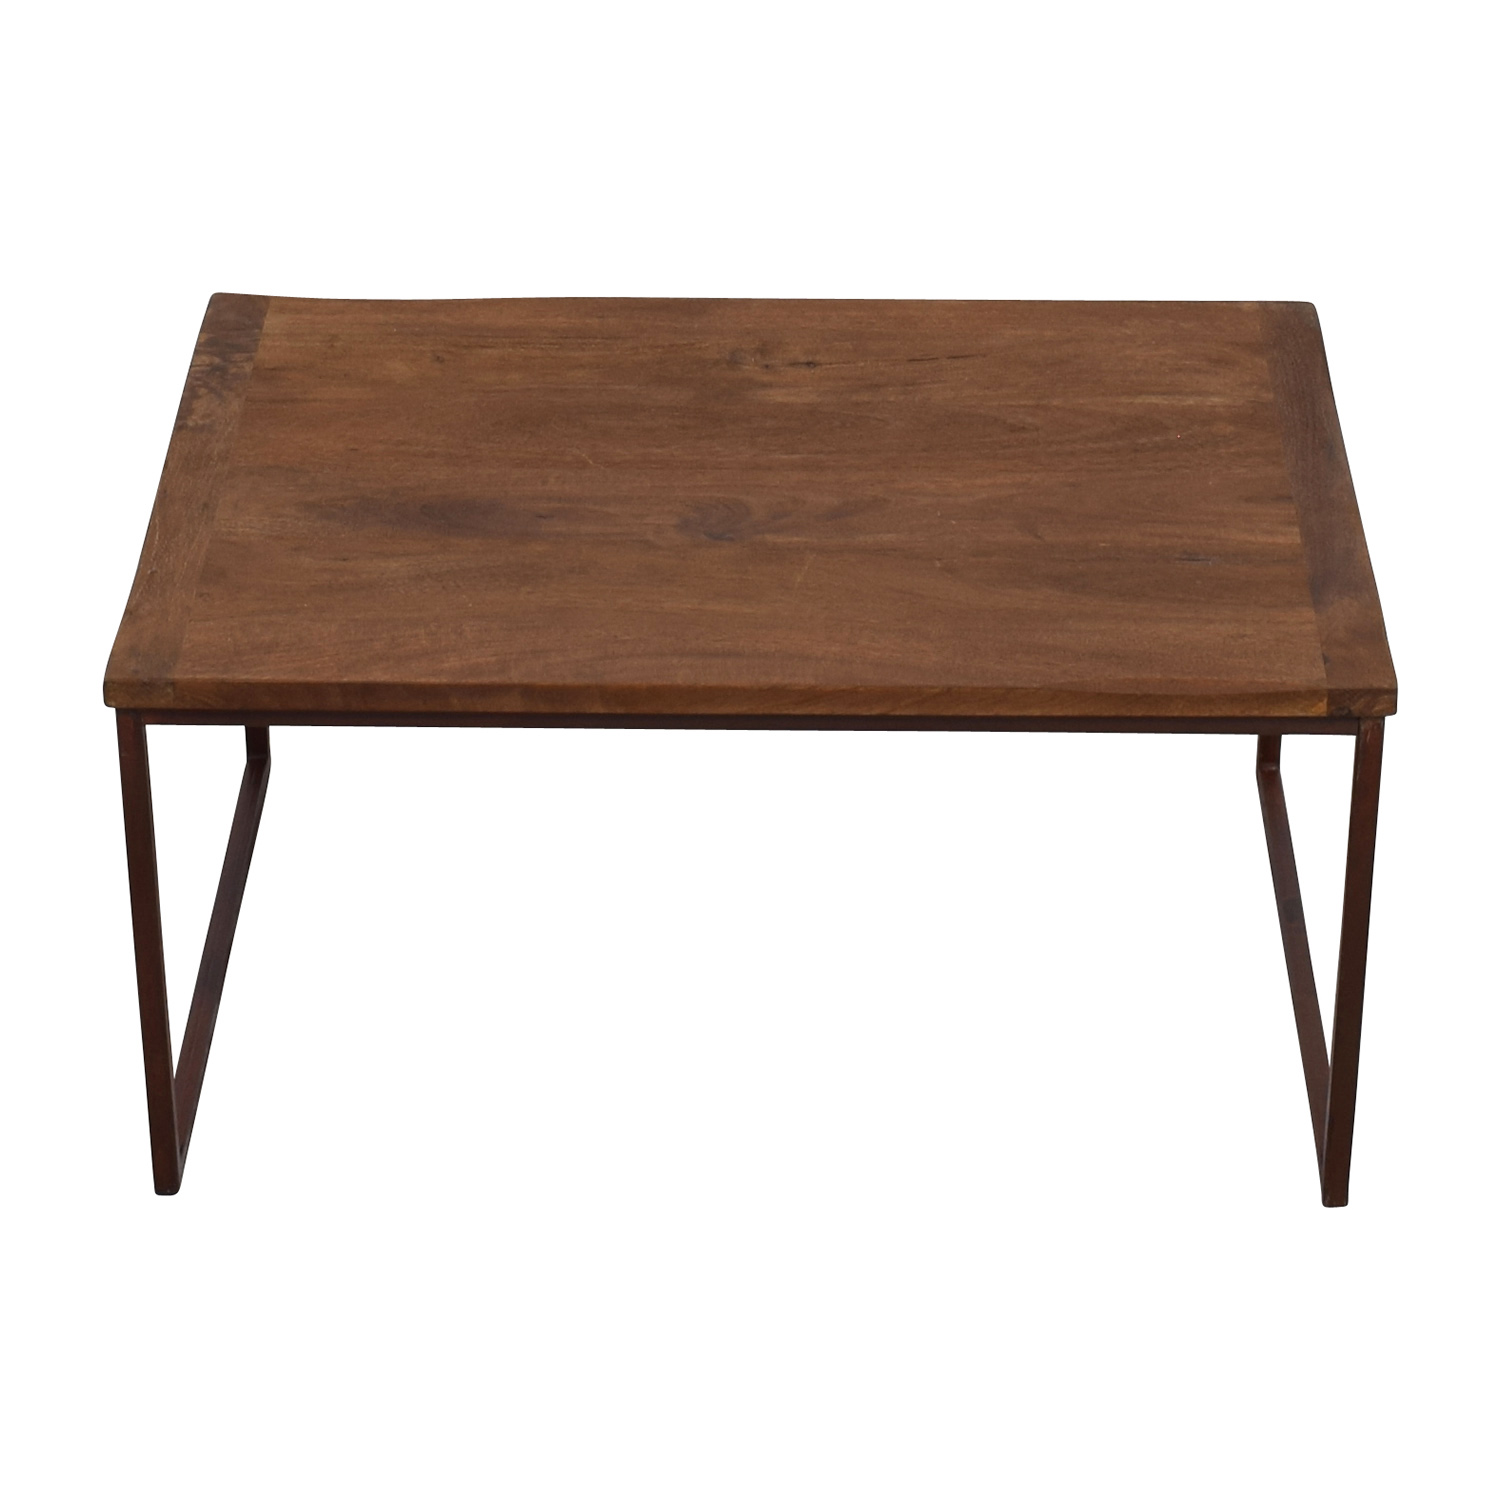 Coffee Tables: Used Coffee Tables for sale